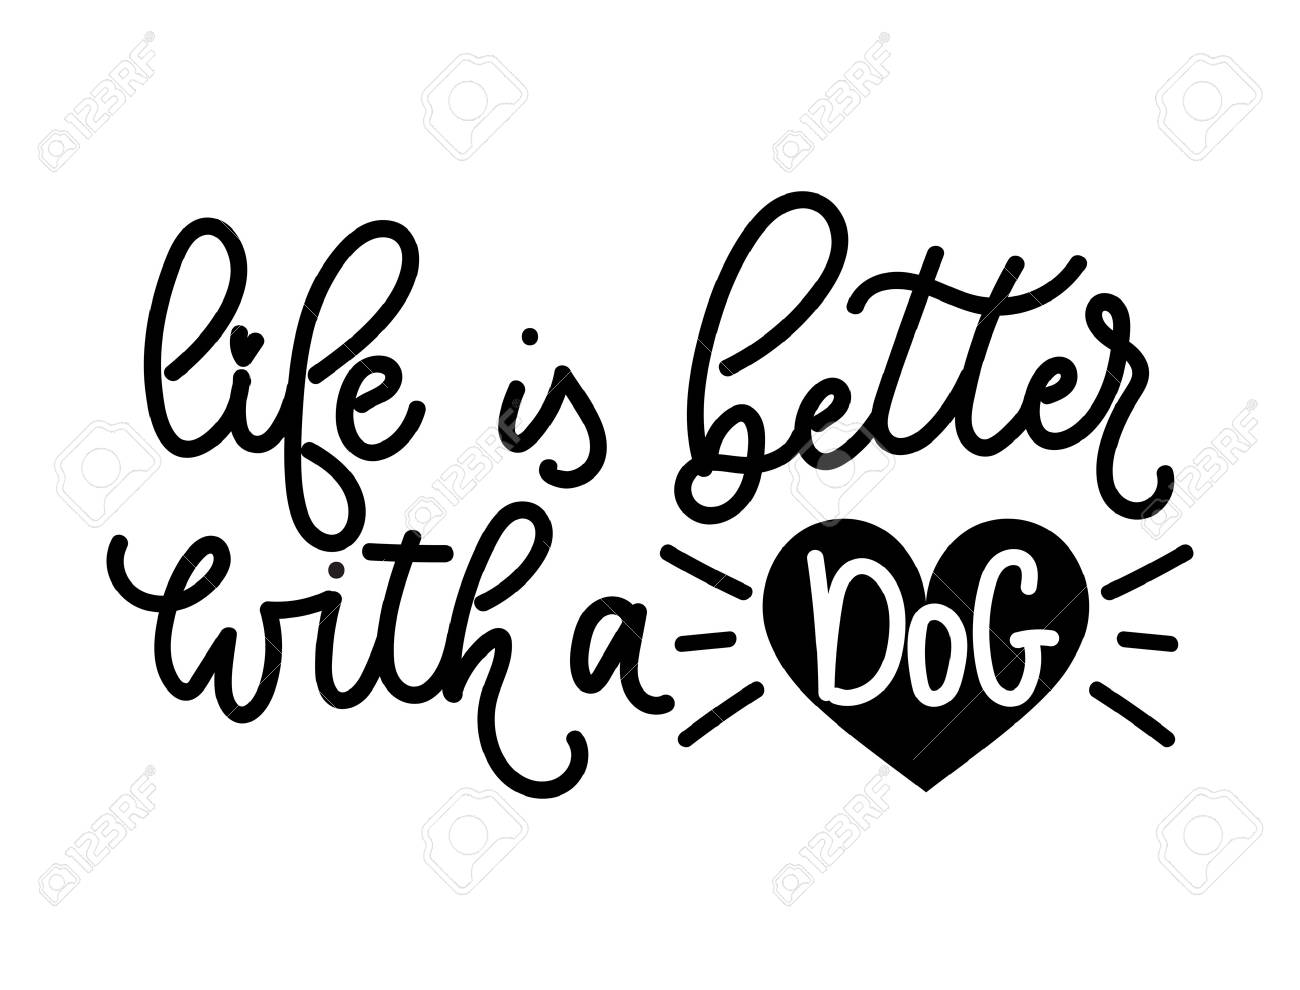 c9eb3258ce Adopt a pet lettering quote. Life is better with a dog. Hand drawn  inspirational